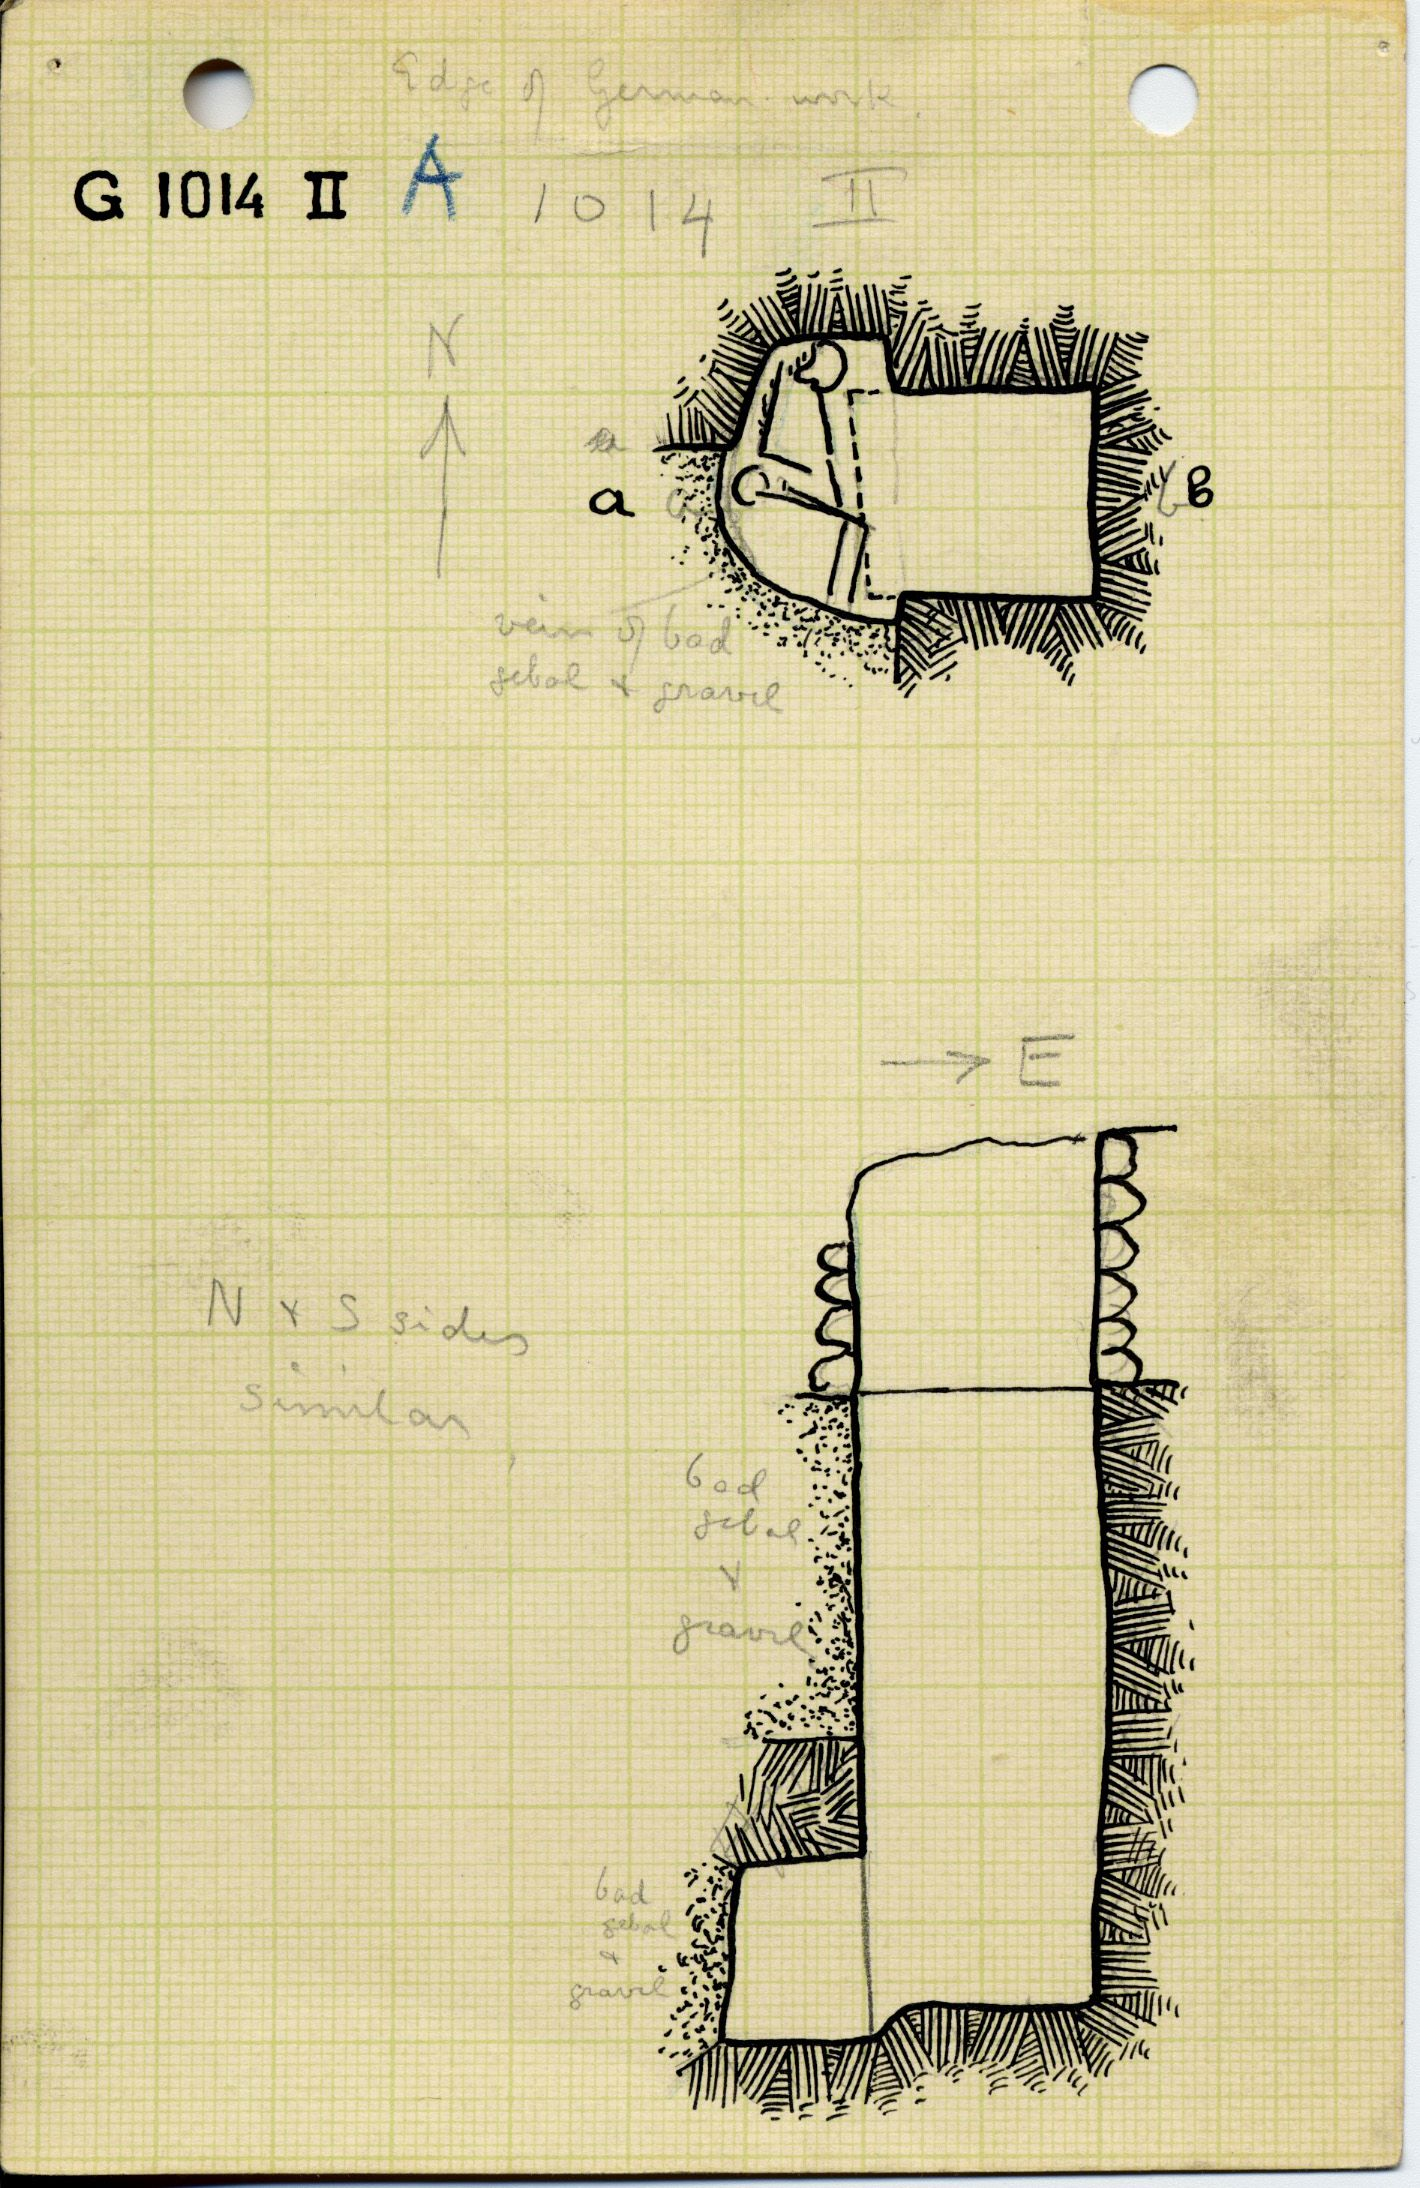 Maps and plans: G 1014, Shaft A